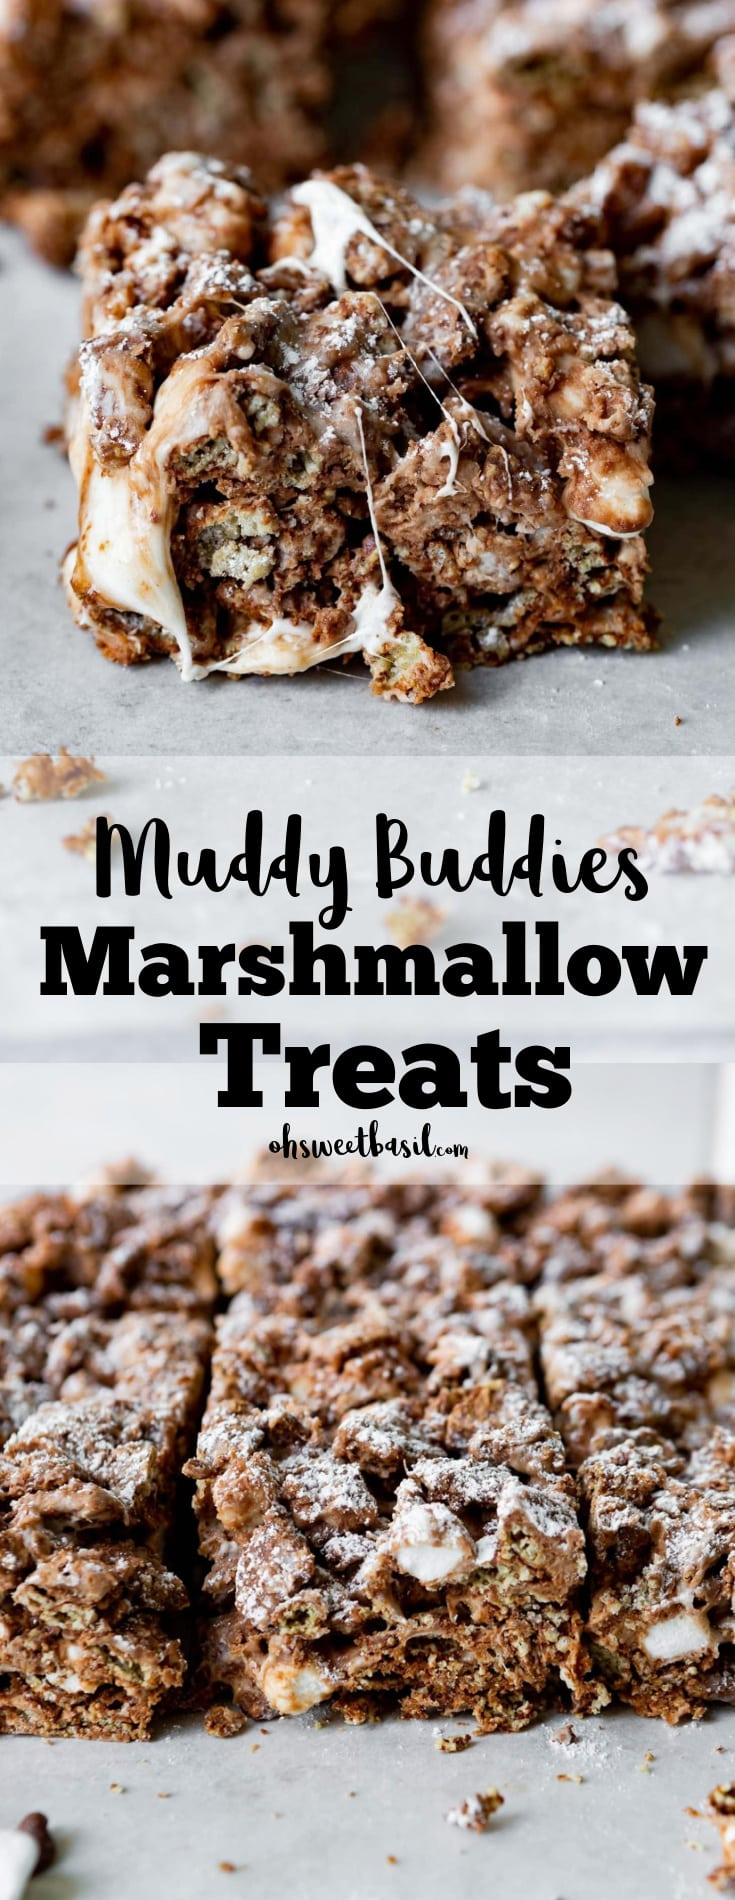 A photo of a single muddy buddies rice krispies treat with gooey marshmallow strung across it.